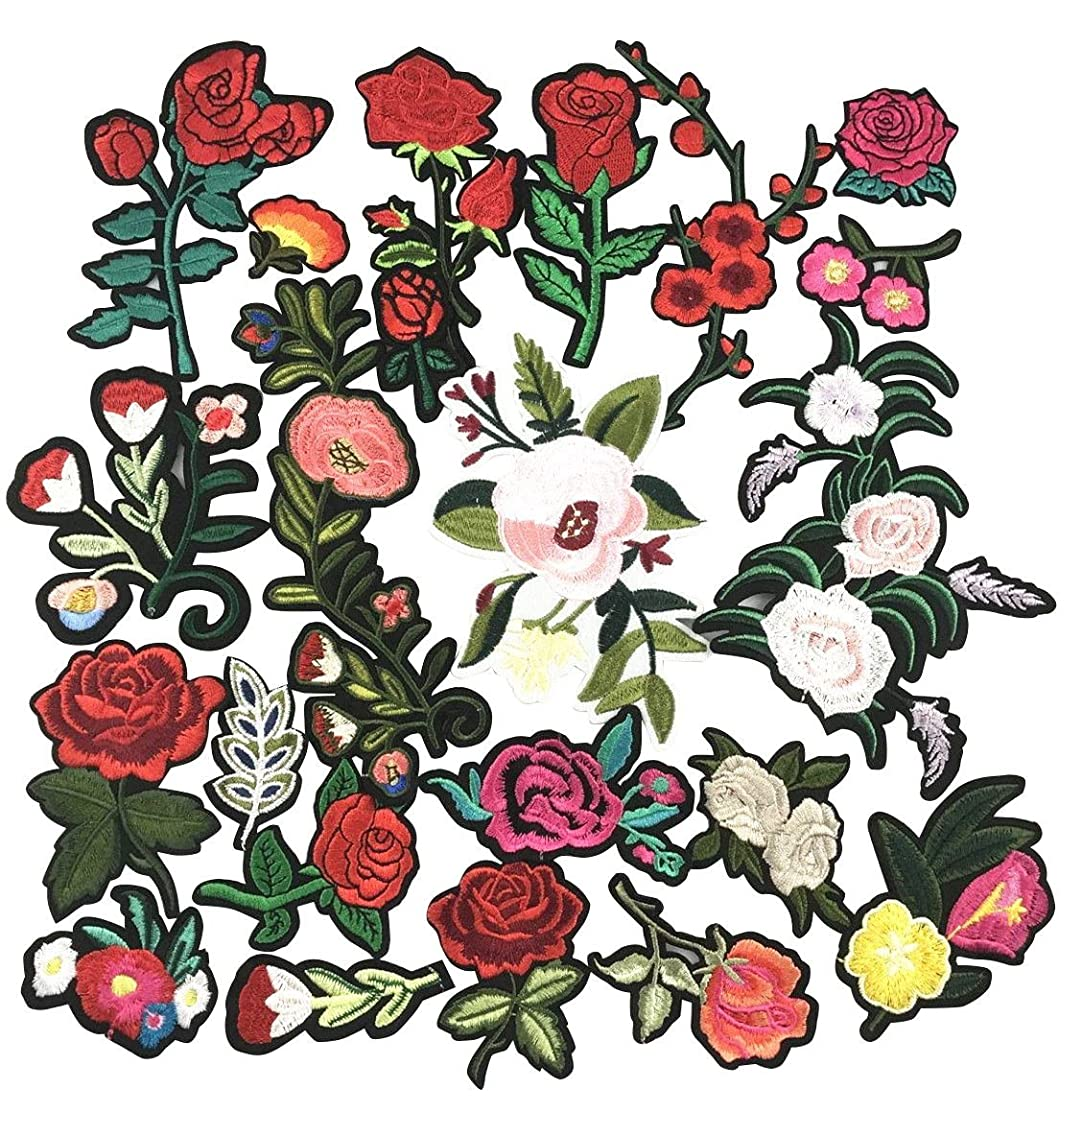 YAKA 22pcs Assorted Iron Embroidery Patches Flower Kits, Embroidery Applique Sewing for Jackets Dress Hat Vest Jeans Backpacks Clothes, Decoration Applique Patch DIY Accessory Flower